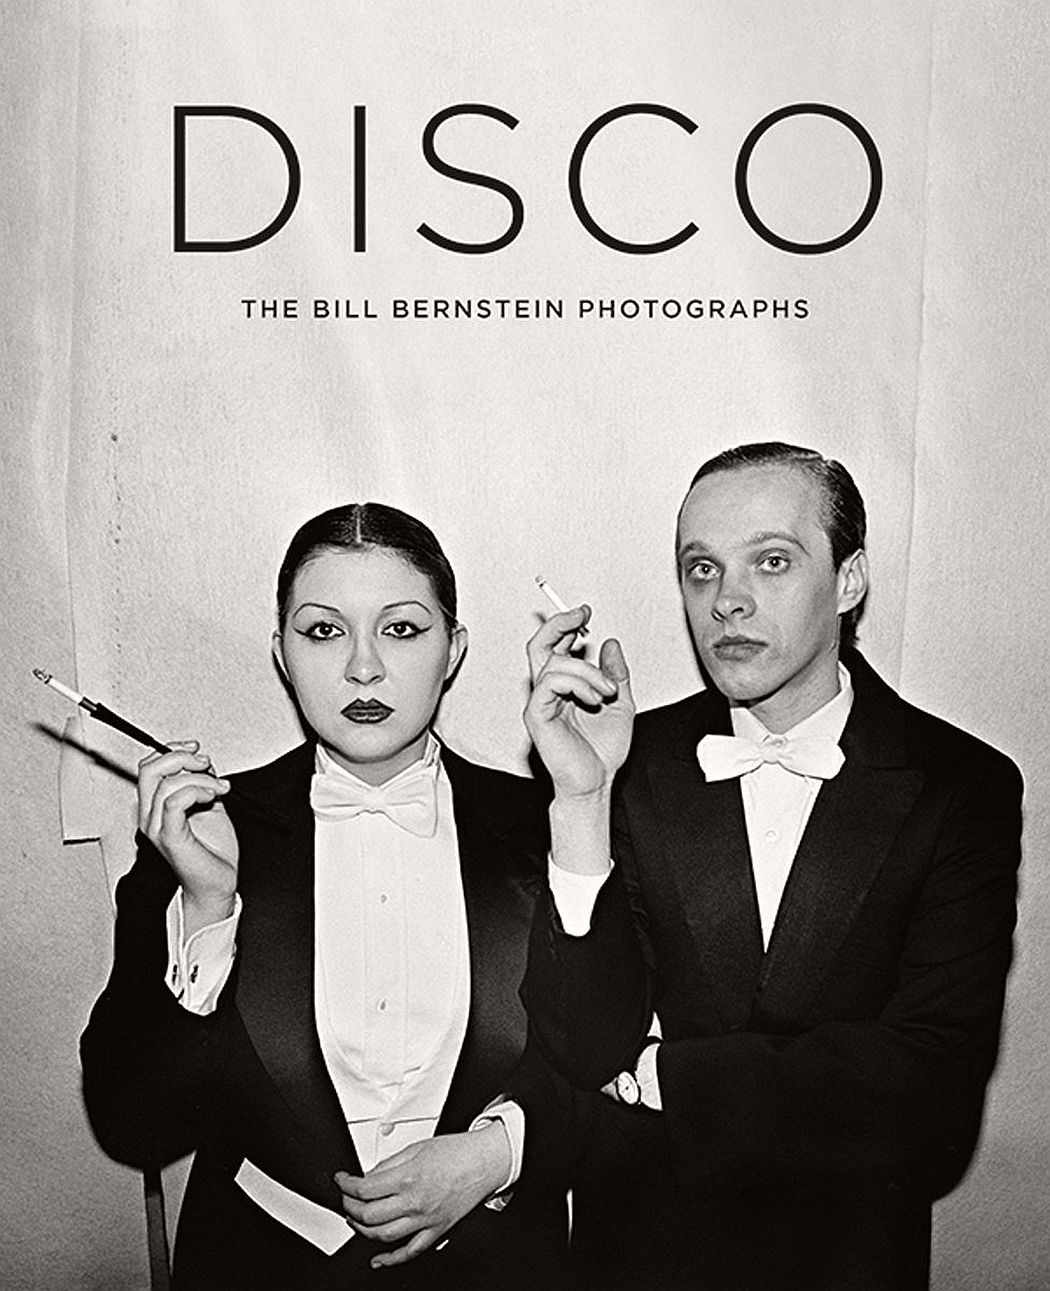 disco-the-bill-bernstein-photographs-00-book-cover